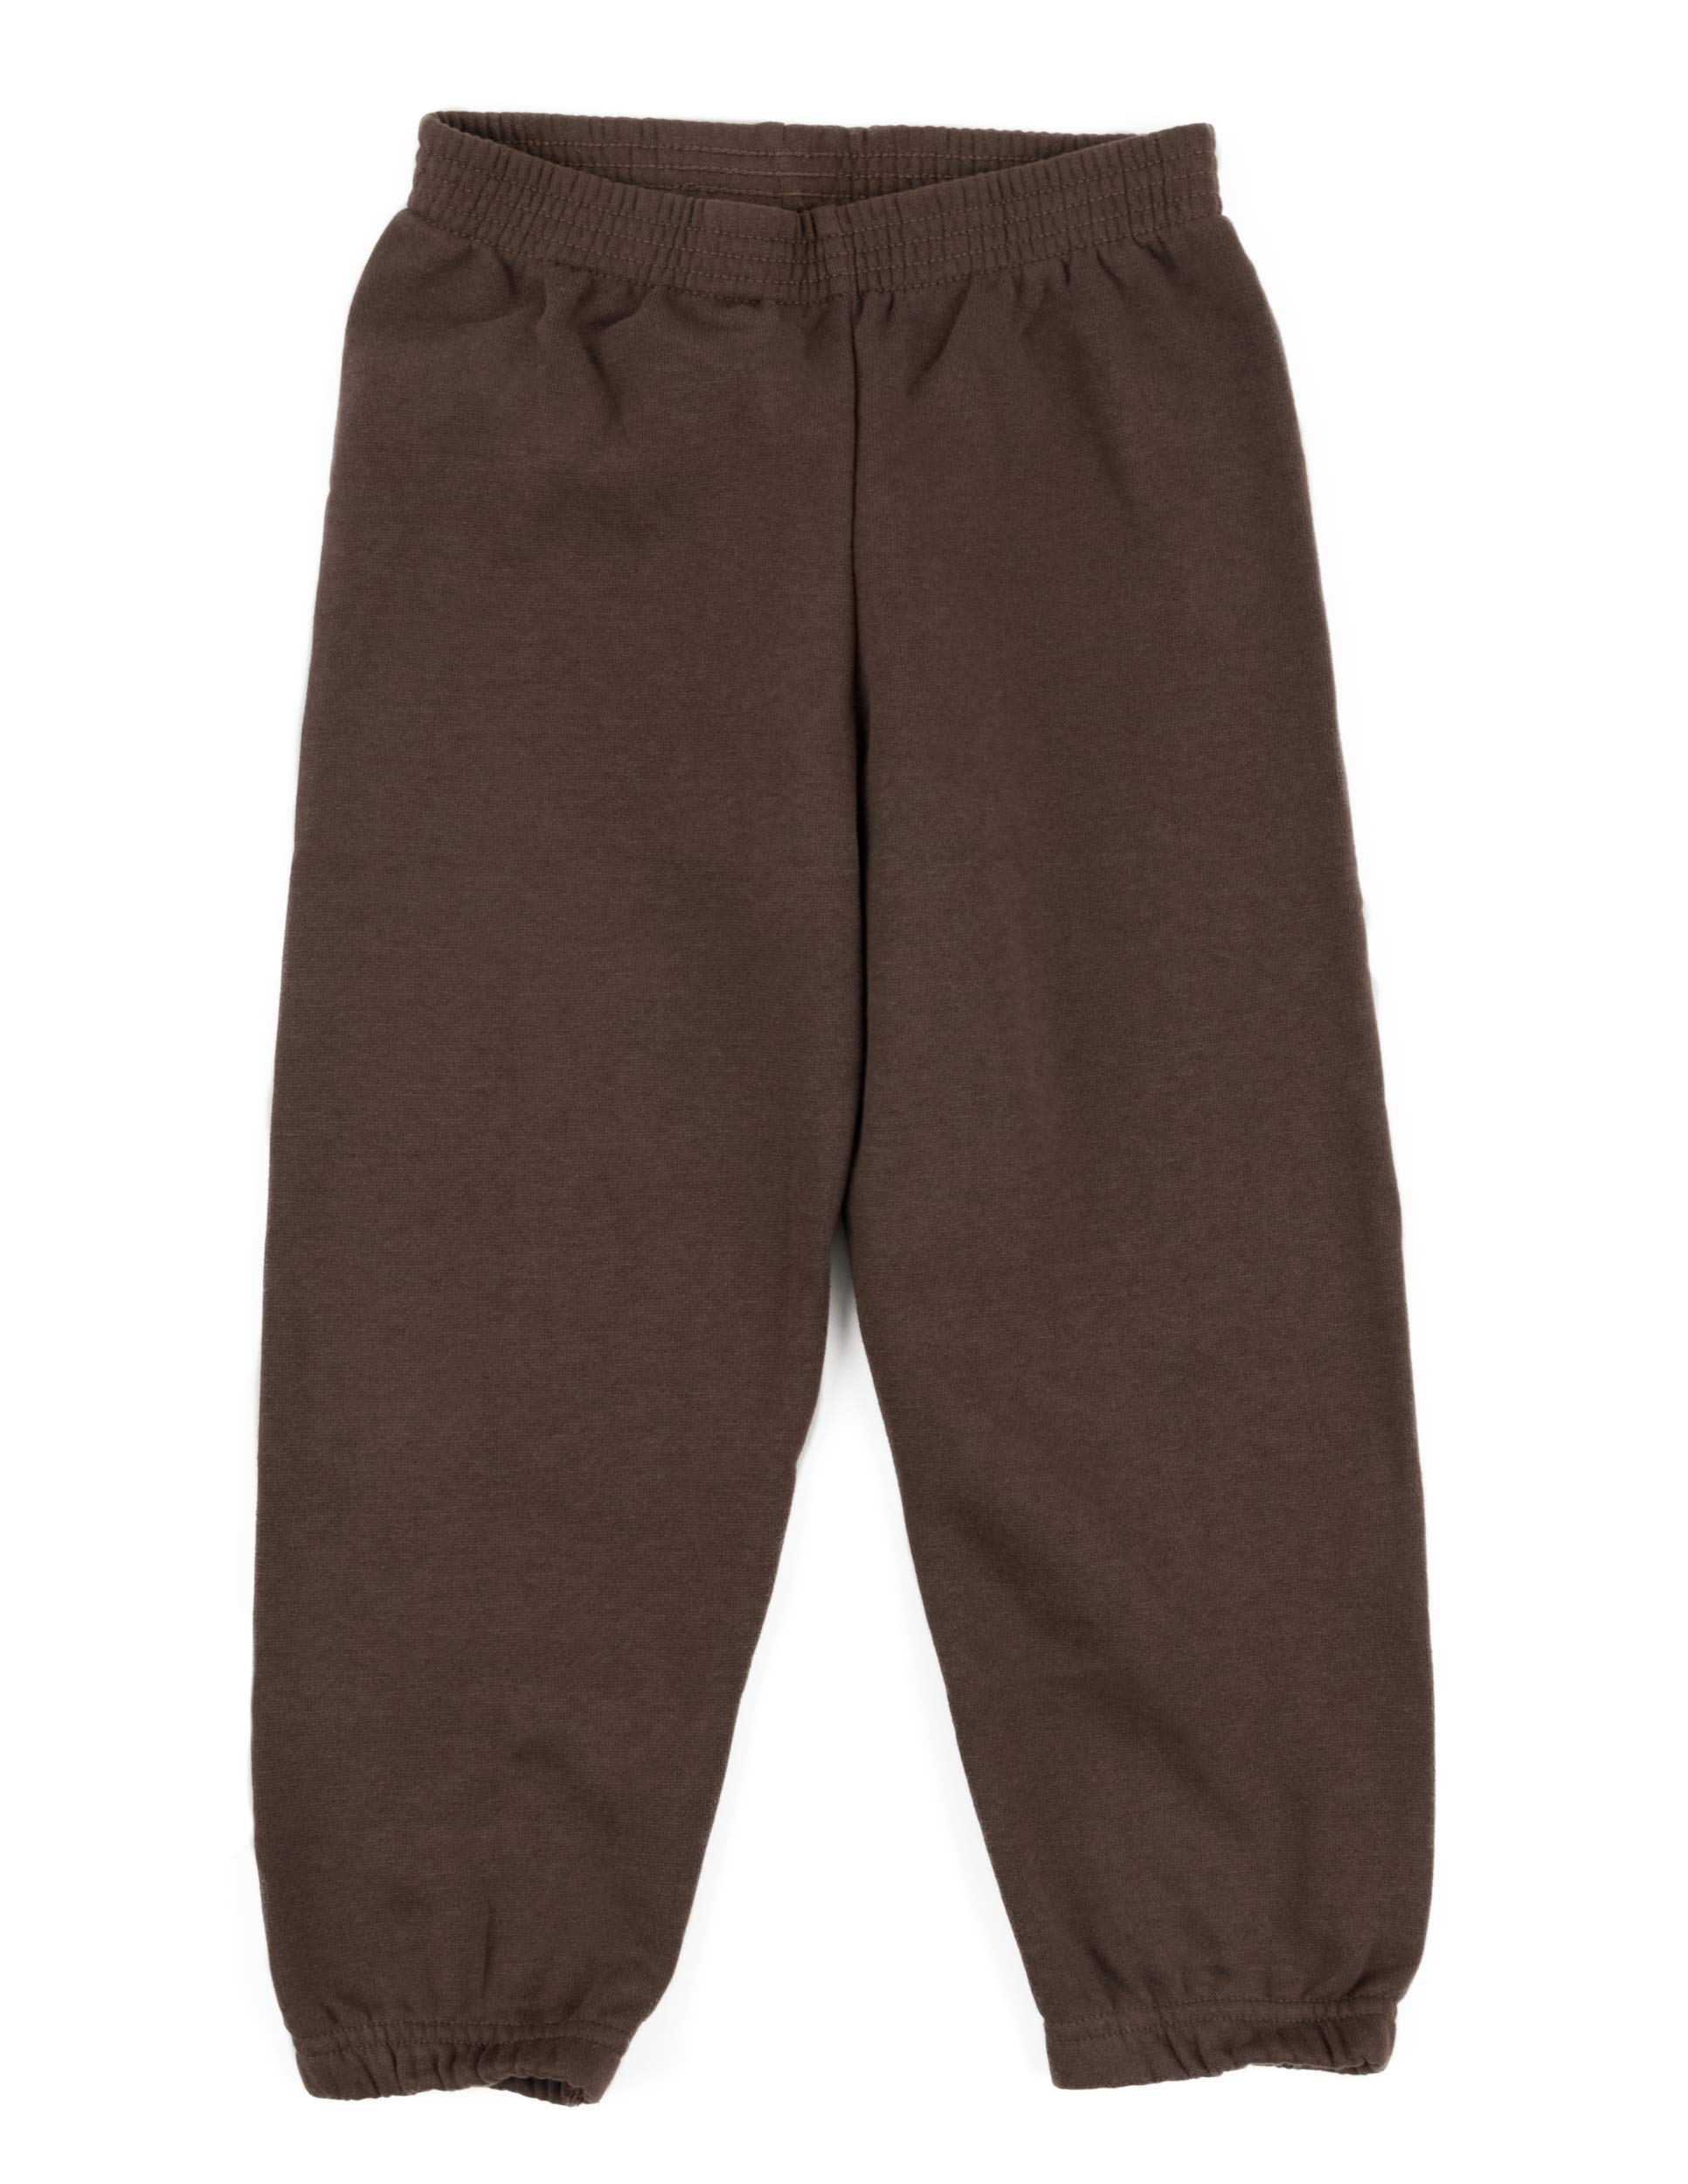 Leveret Kids Boys Sweatpants Brown Size 6 Years